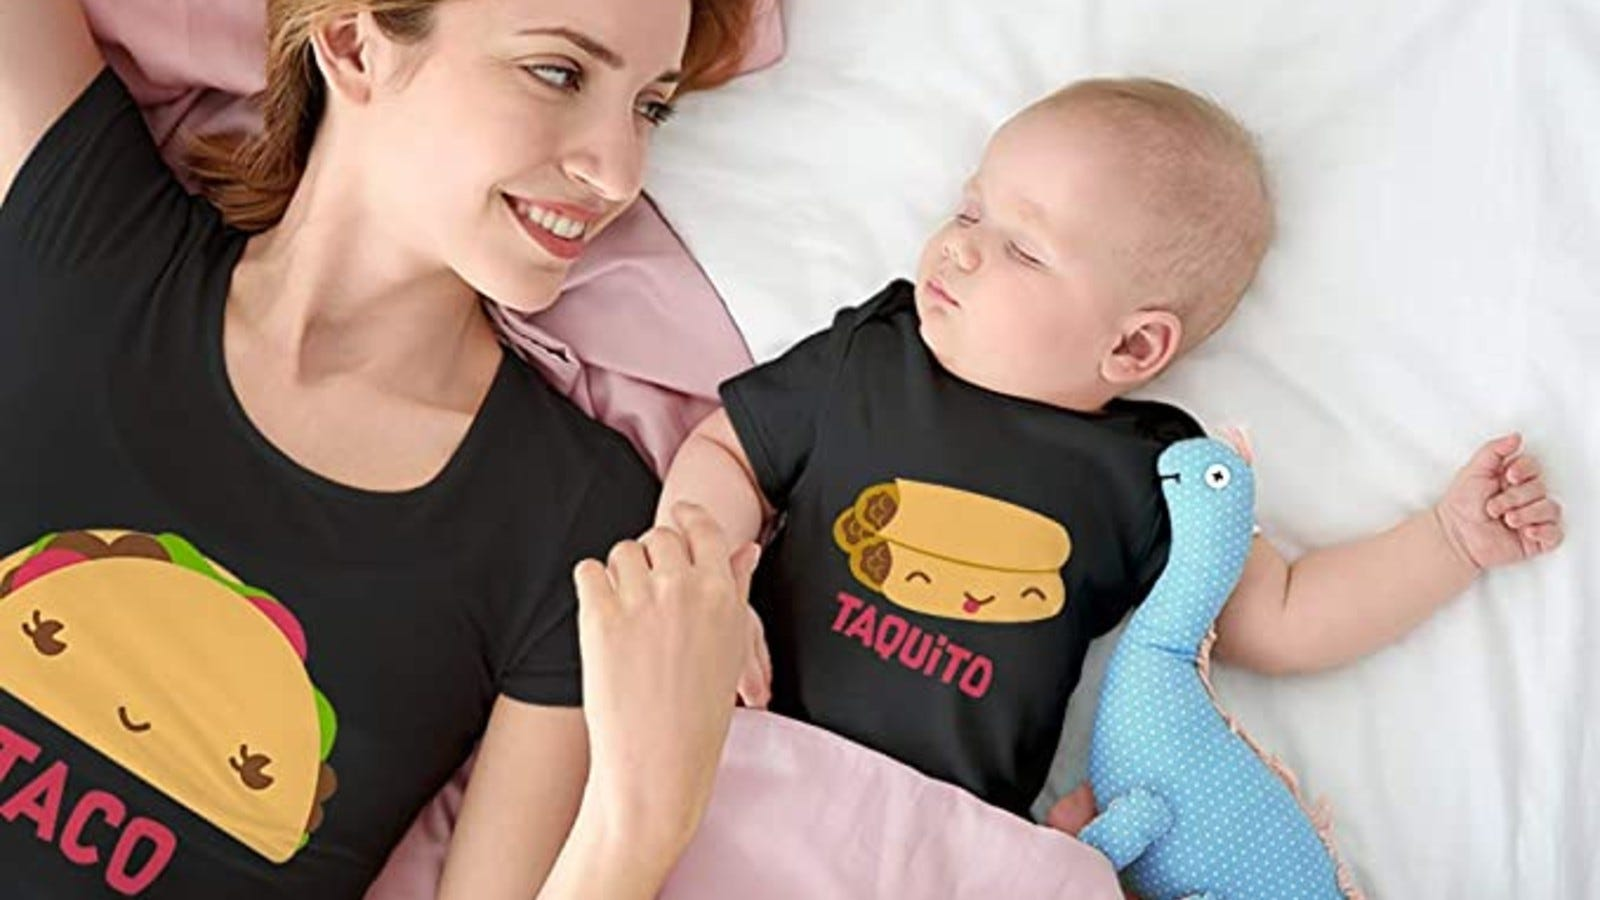 mom laying next to sleeping baby wearing matching black taco and taquito shirt and onesie